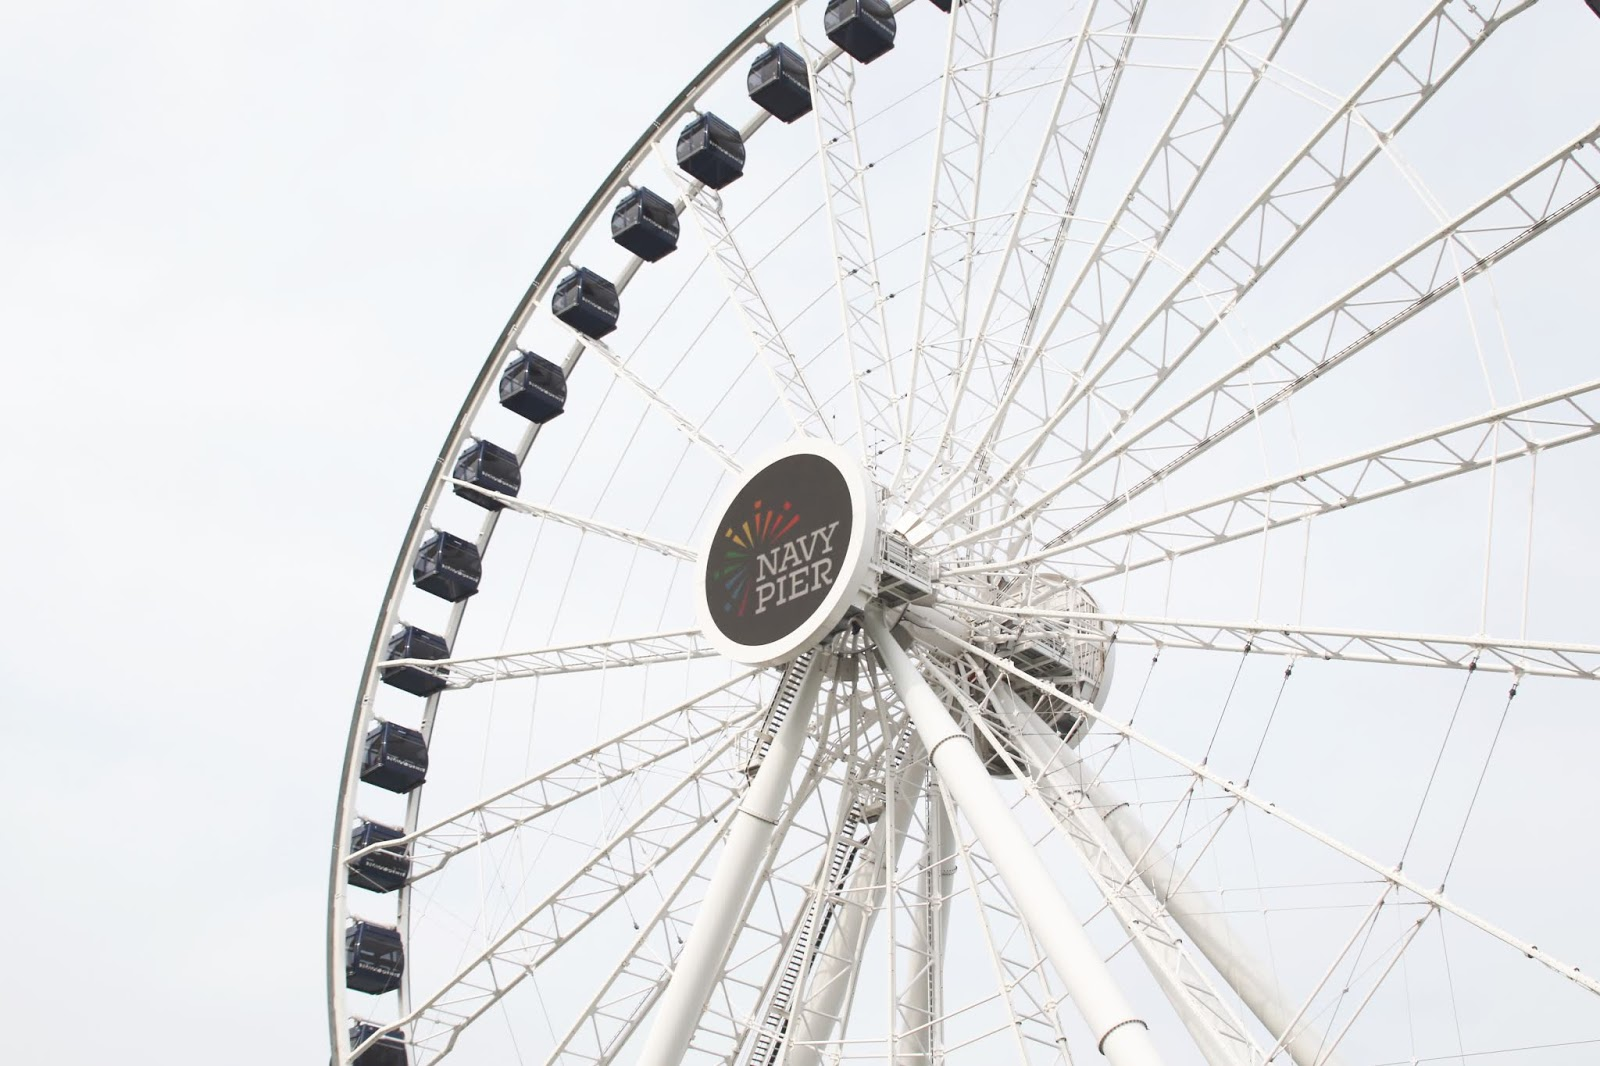 Navy pier ferris wheel chicago